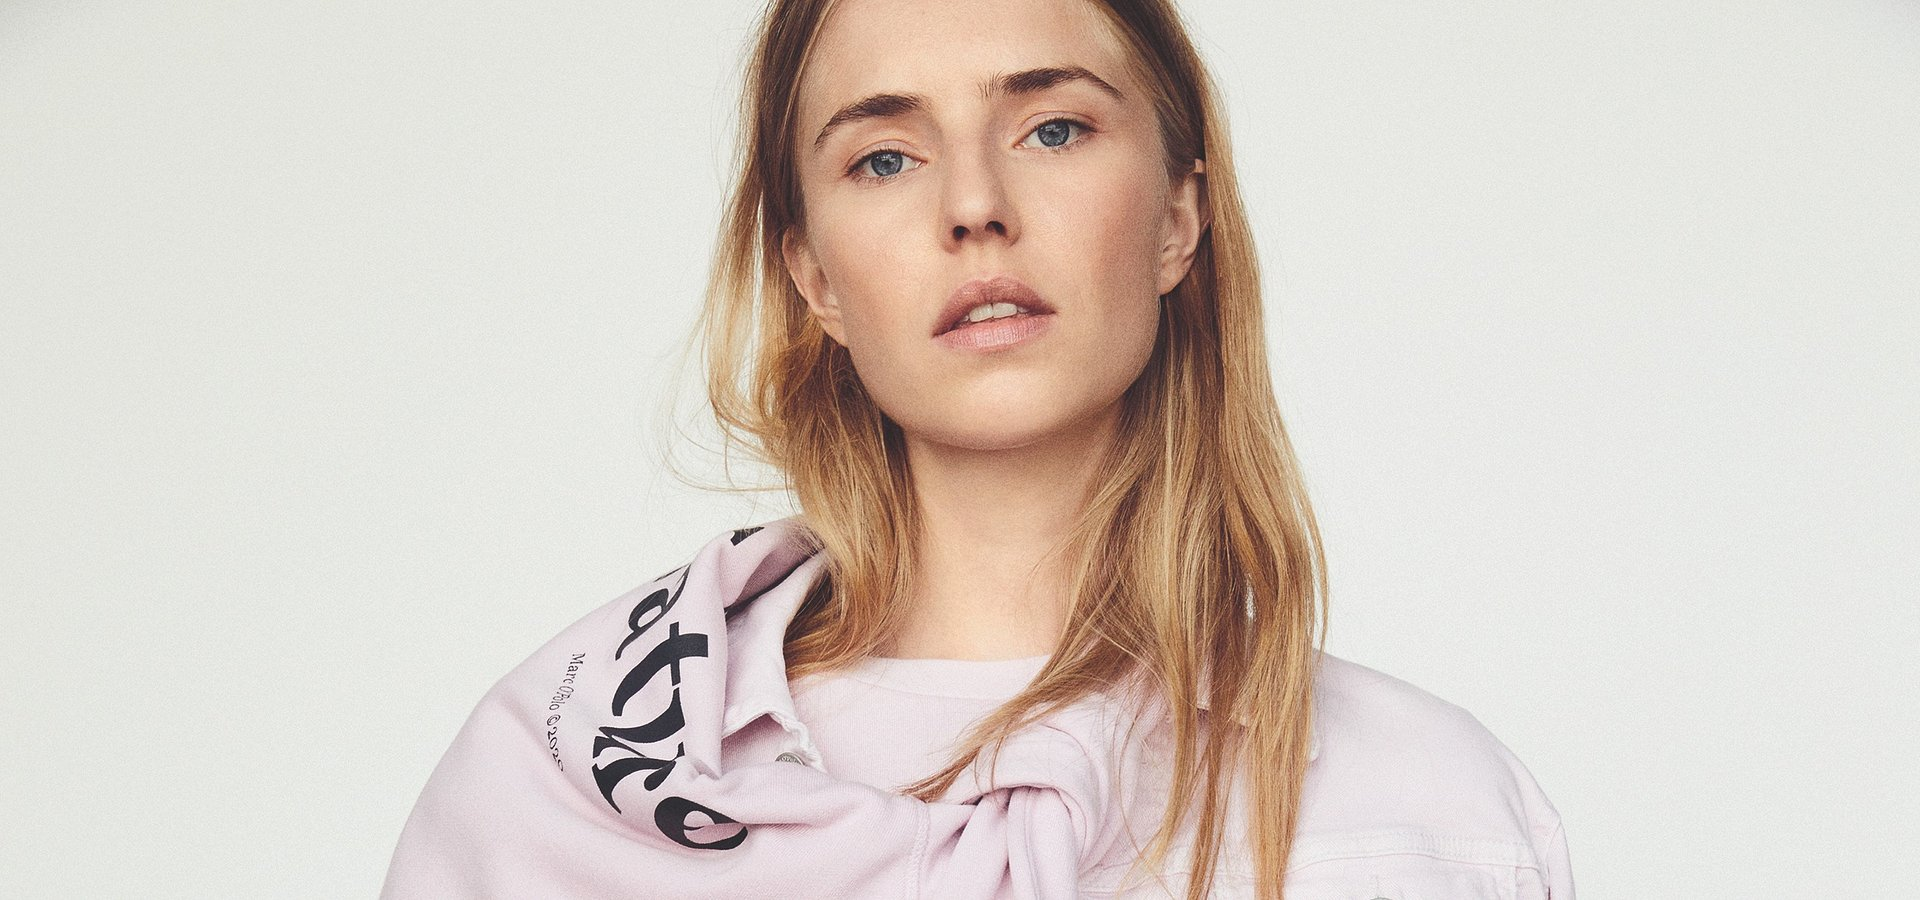 MARC O'POLO SS20 – Nordic by Nature